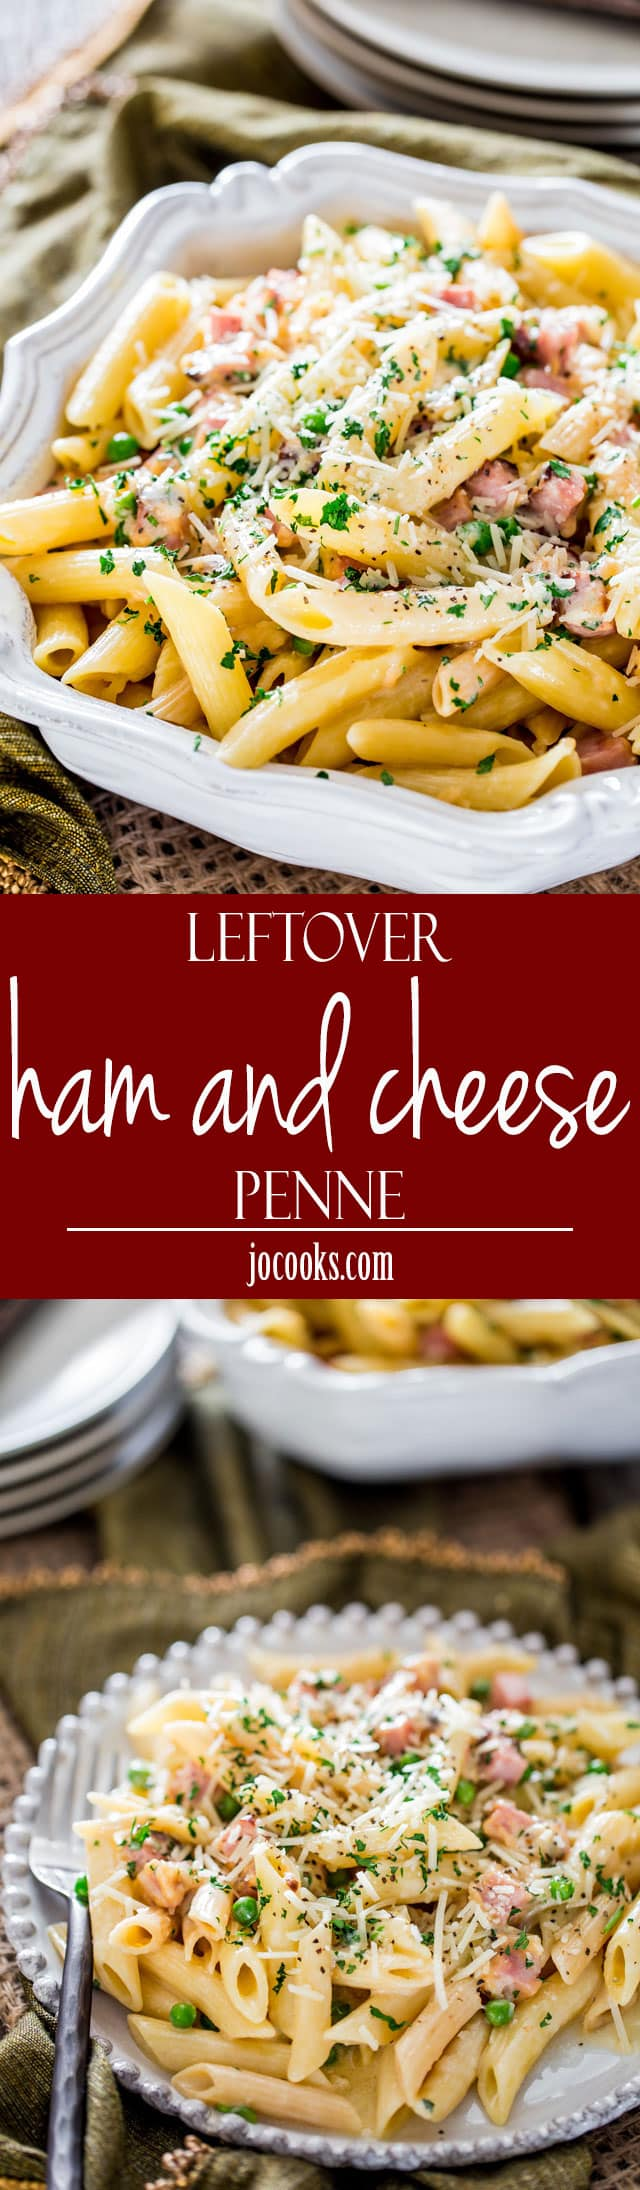 Leftover Ham and Cheese Penne - incredibly creamy and cheesy penne loaded with ham and peas, perfect use of that leftover ham from your holiday dinner. www.jocooks.com #cheesypenne